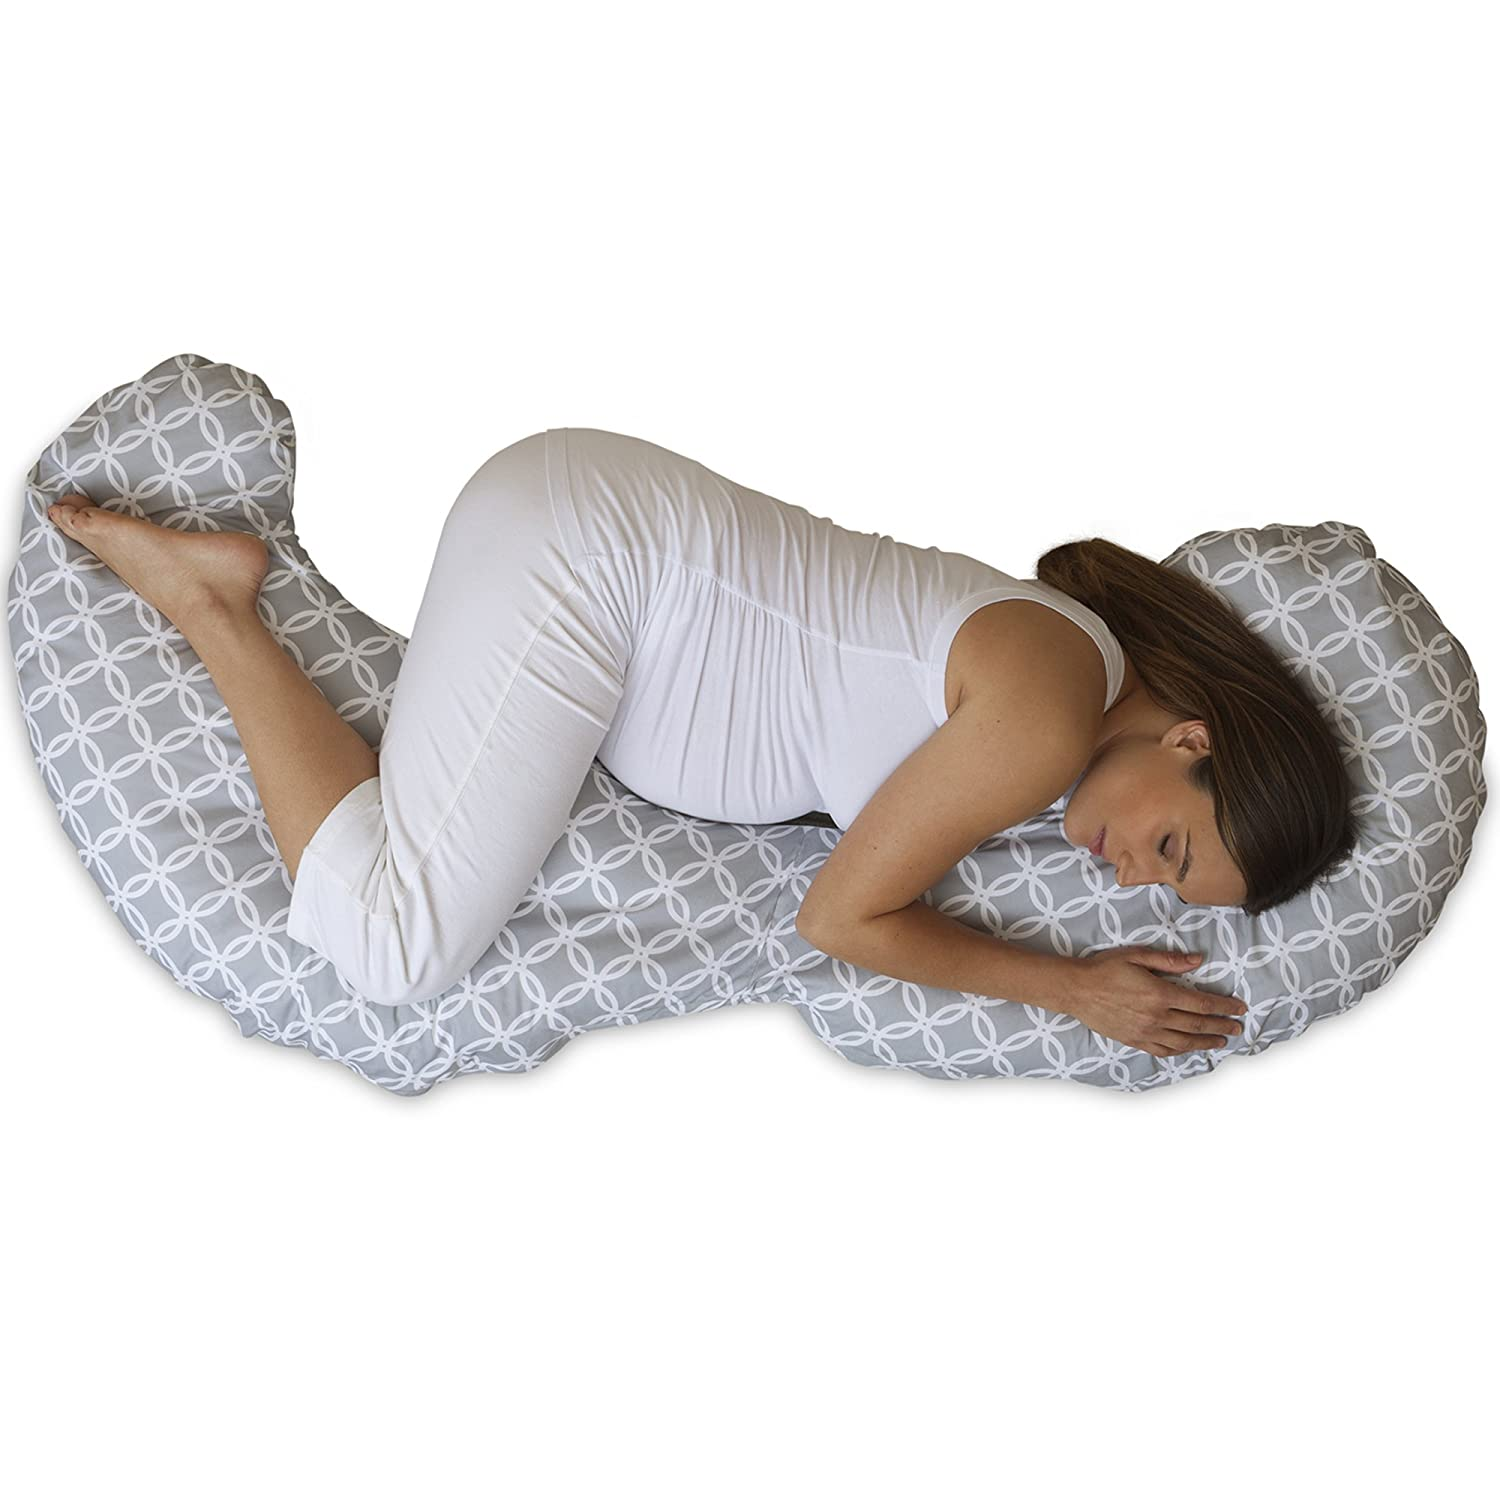 You must be discerning and cautious when looking for the best pregnancy pillow on Amazon. This article introduces you to some of the best pregnancy pillows on Amazon.